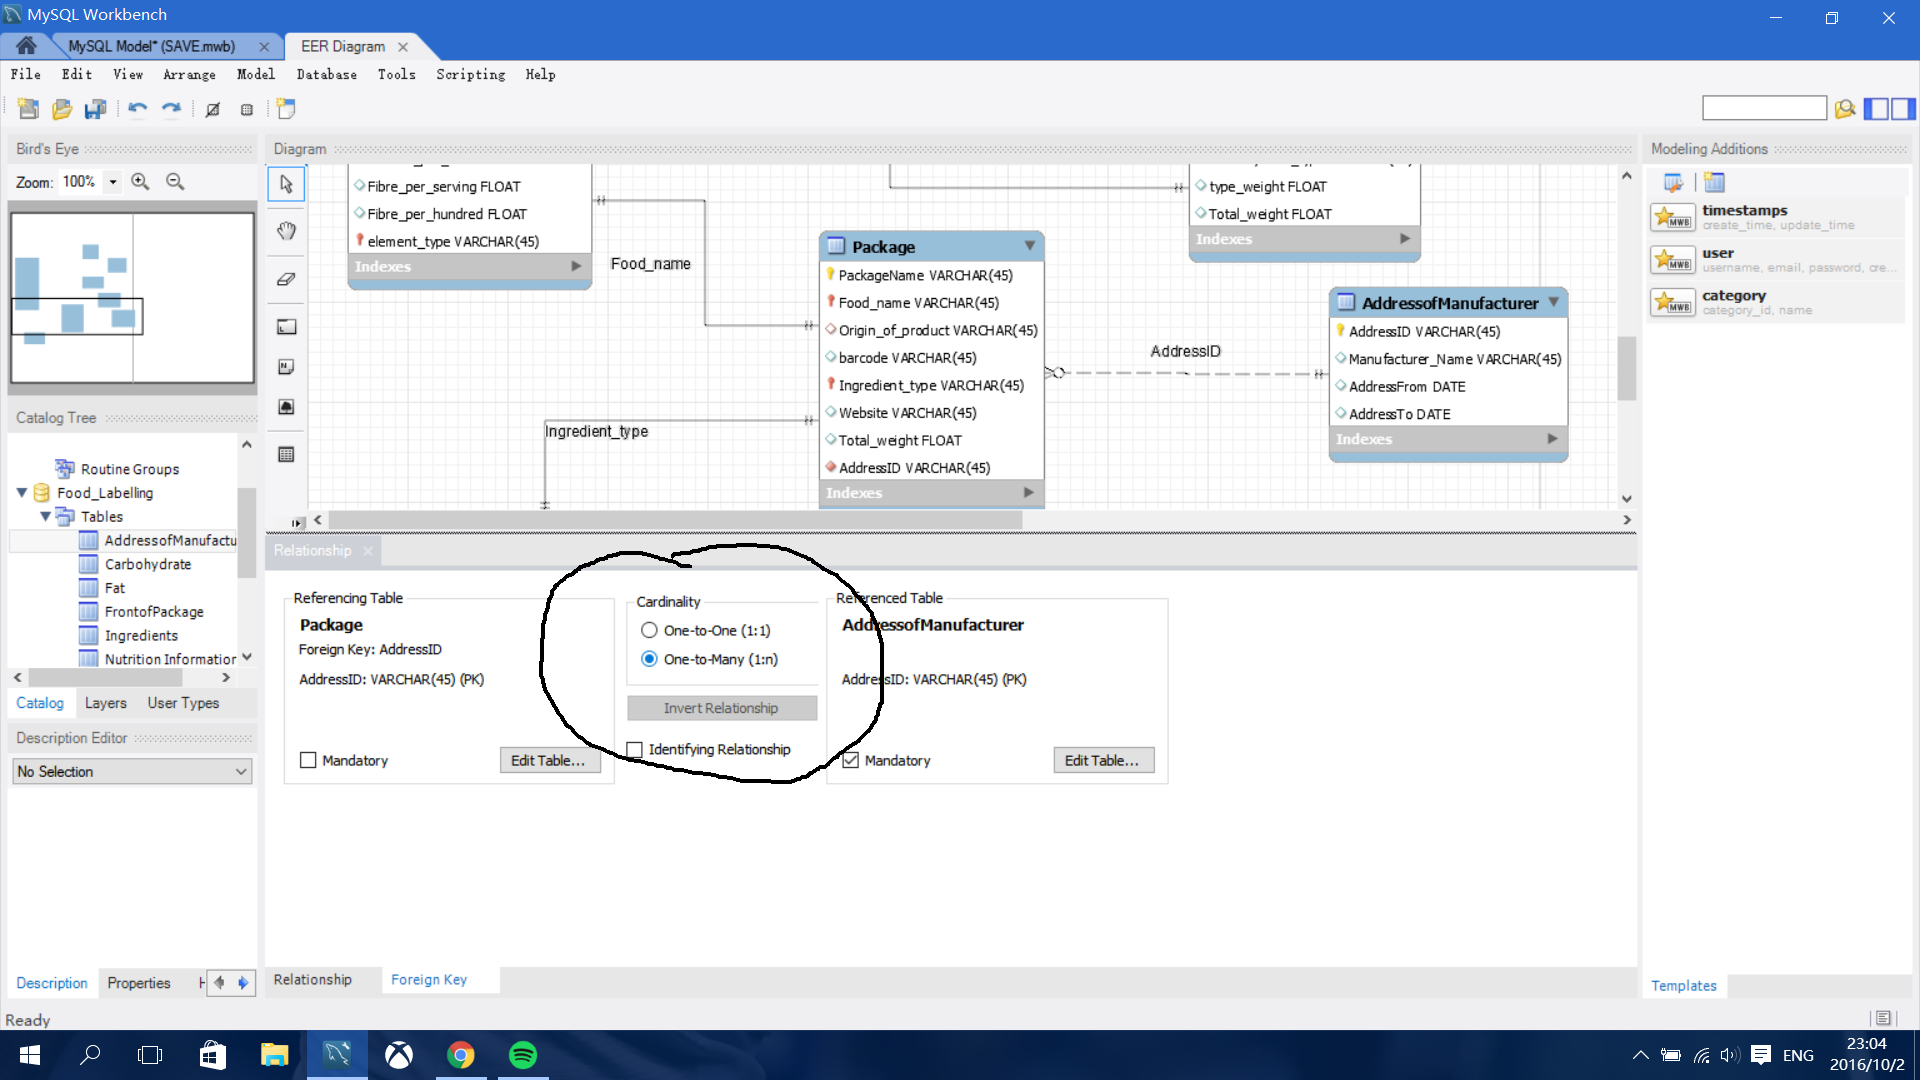 My Sql Workbench Creating Many To Many Relationship In Eer throughout One To Many Relationship Diagram